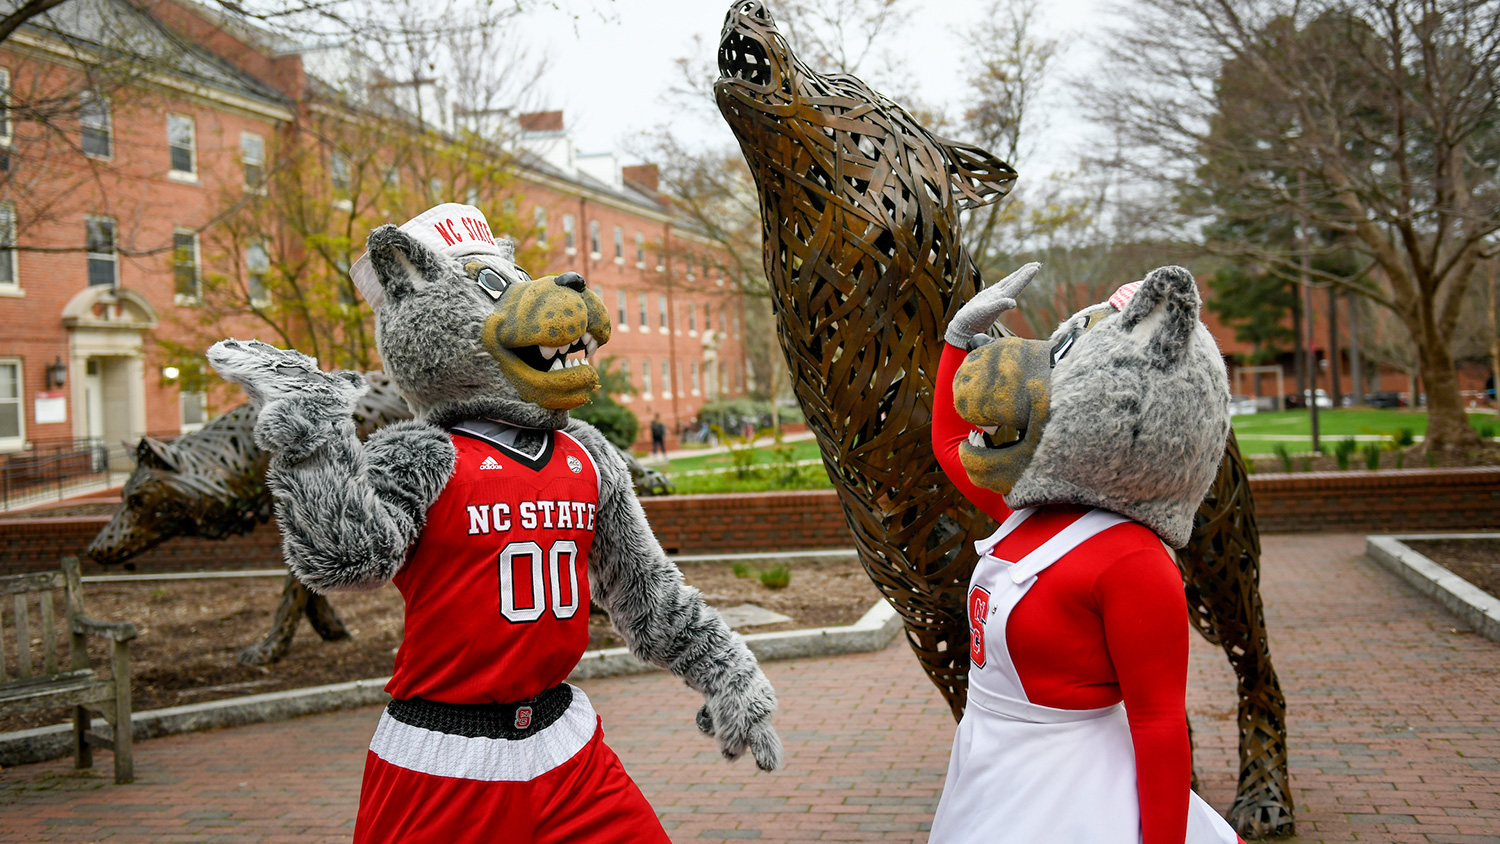 Career Connections - College of Natural Resources at NC State University